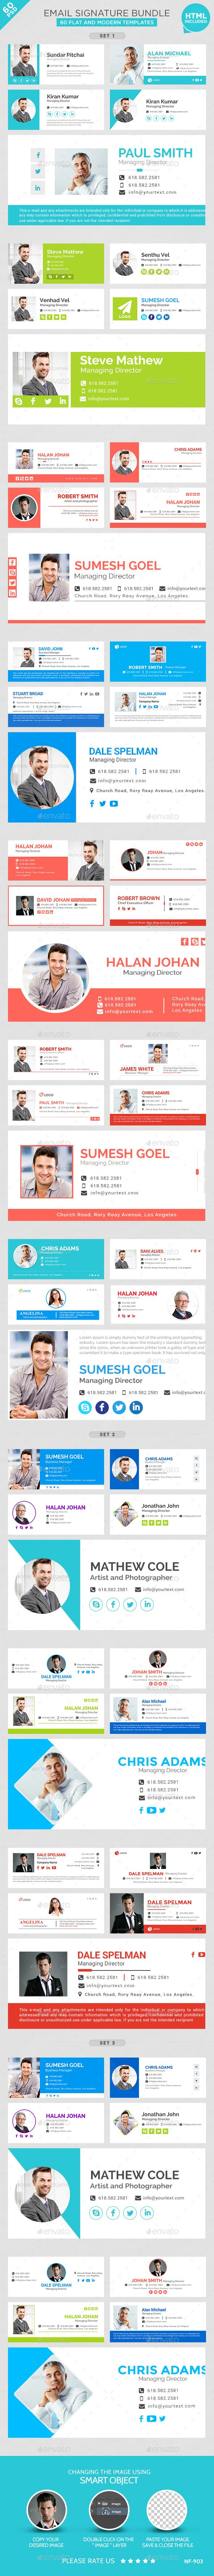 Email Signature Bundle - 60 PSD and 60 HTML Files - Miscellaneous Web Elements